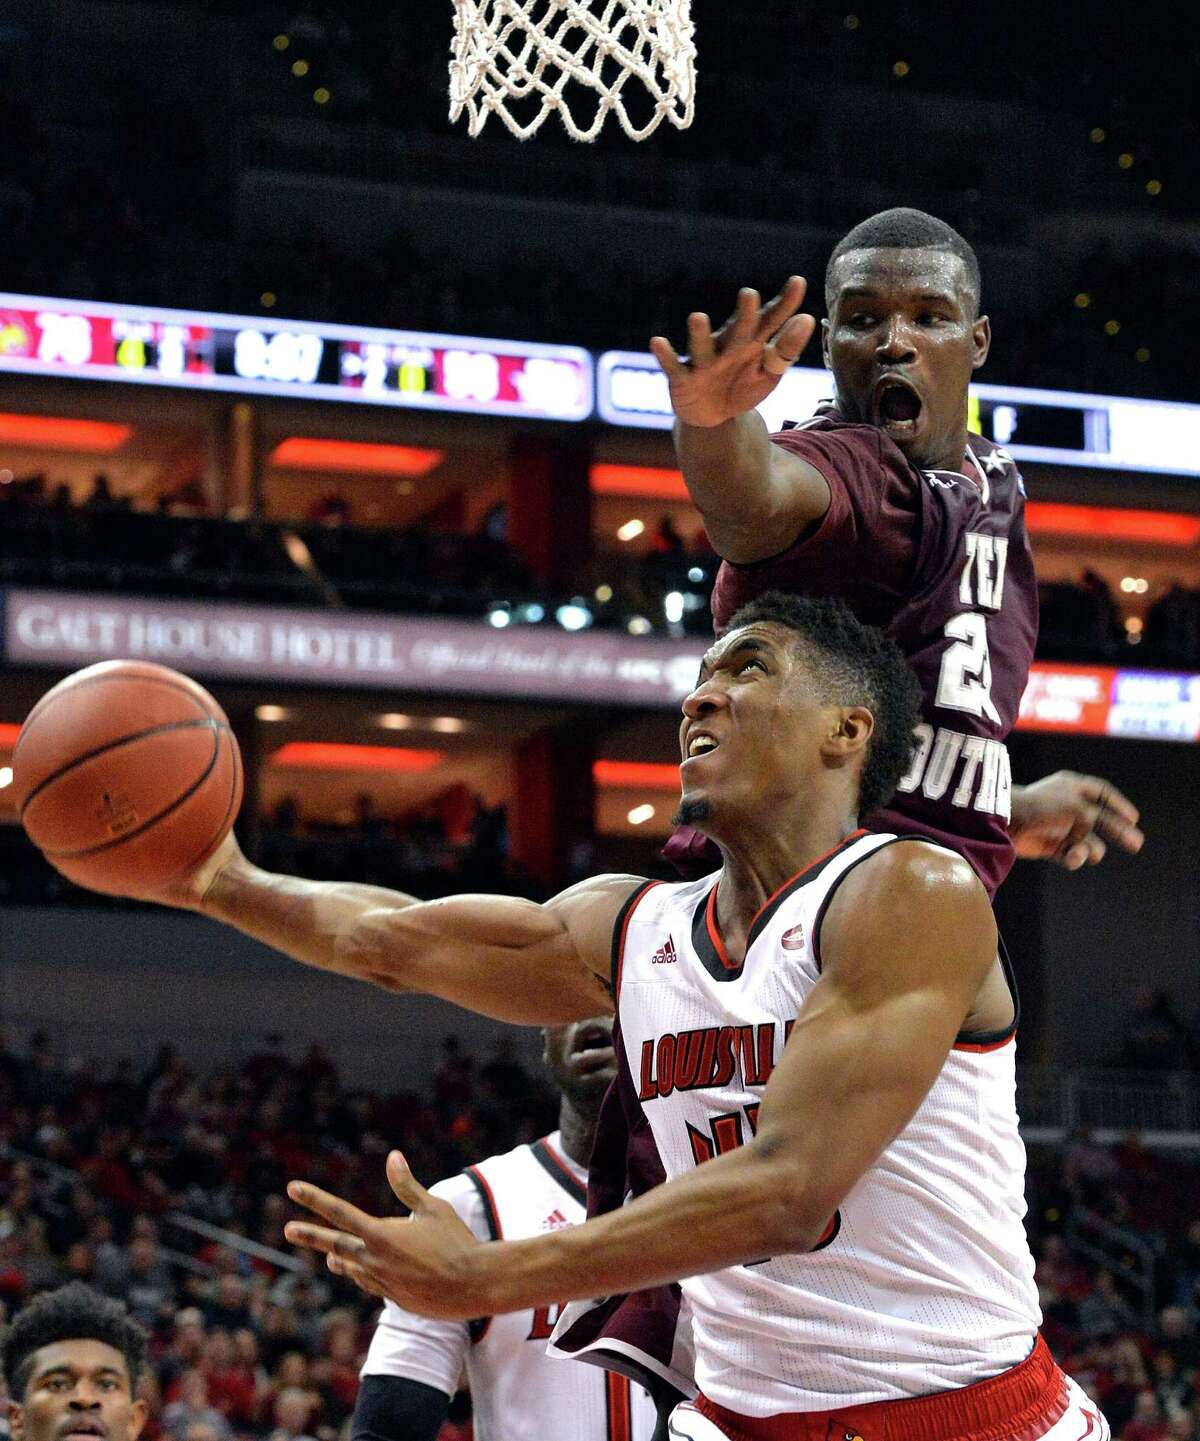 Texas Southern's Derrick Griffin, who had 26 rebounds, puts pressure on Louisville's Donovan Mitchell, who goes in for a layup in the second half.